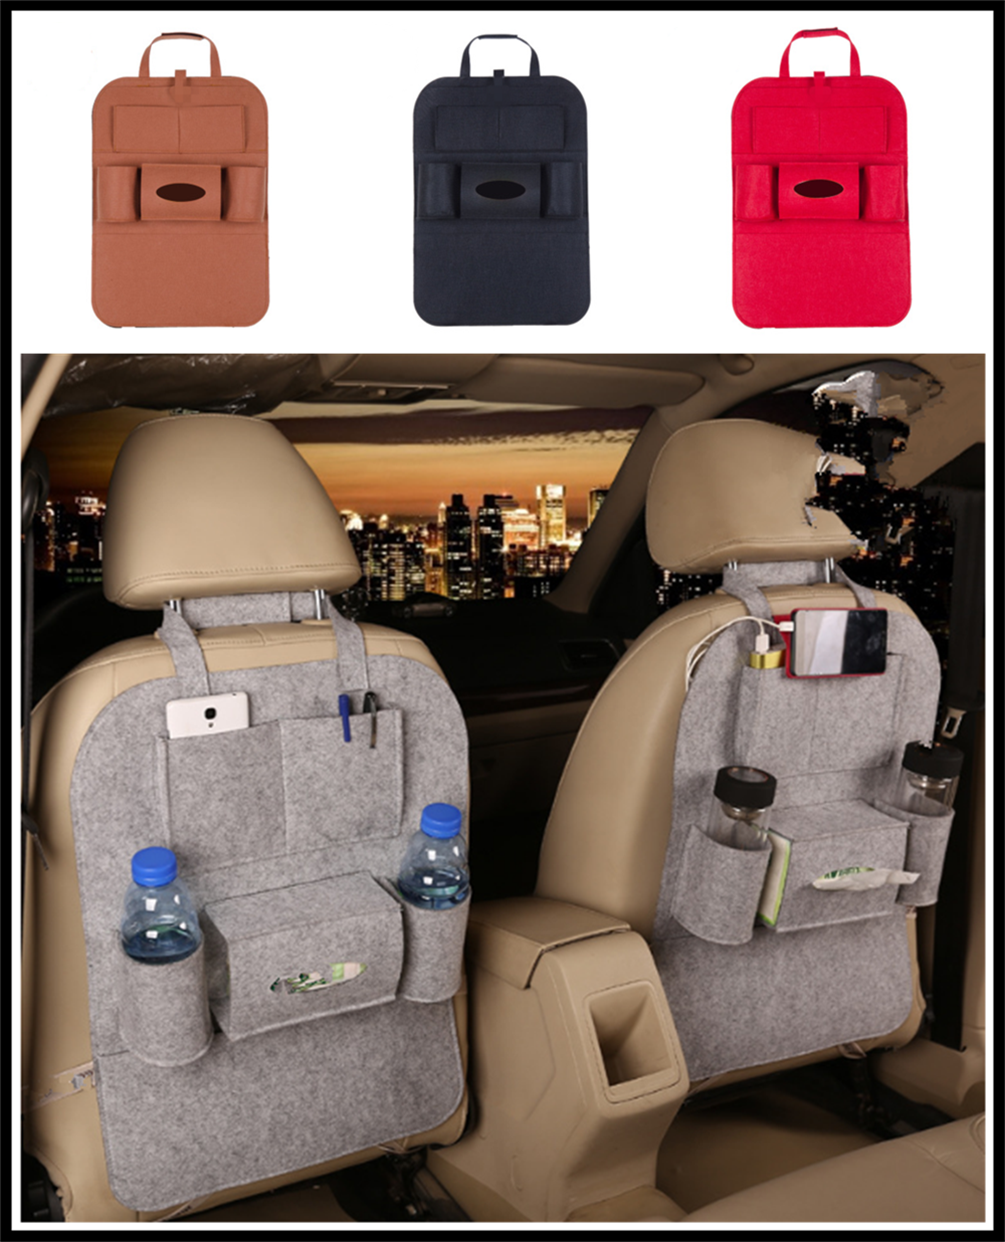 New car interior seat bag storage multi-port finishing debris rack for Kia eco Pro-cee-d KOUP cee-d Rondo Kue Kee